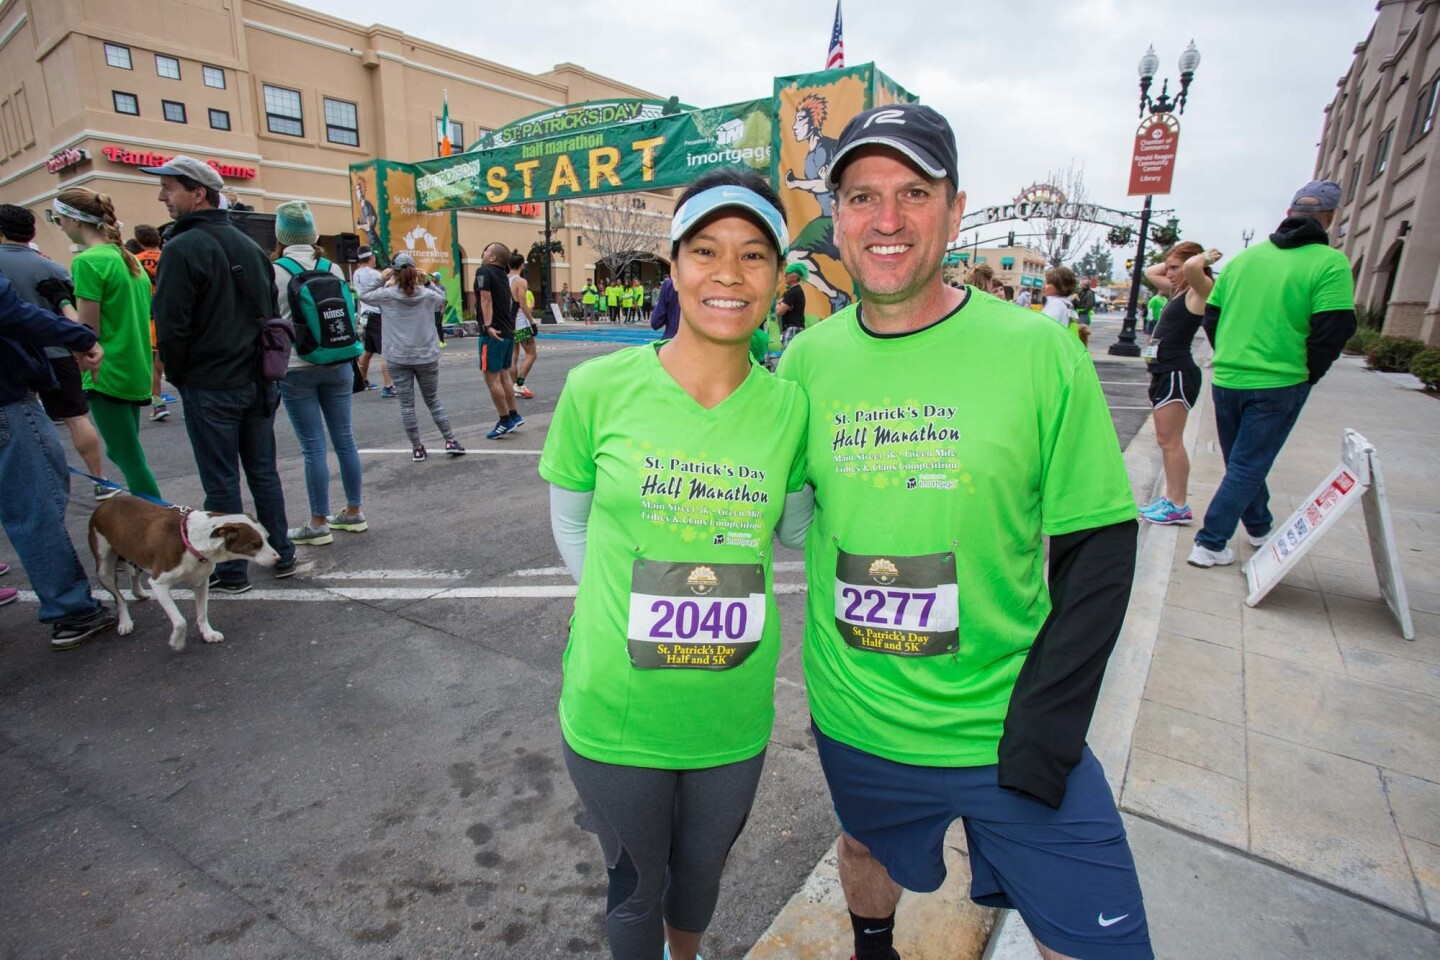 Runners donned their green gear to participate in the St. Patrick's Day Half Marathon and 5K in El Cajon on March 5, 2017. (Bradley Schweit)